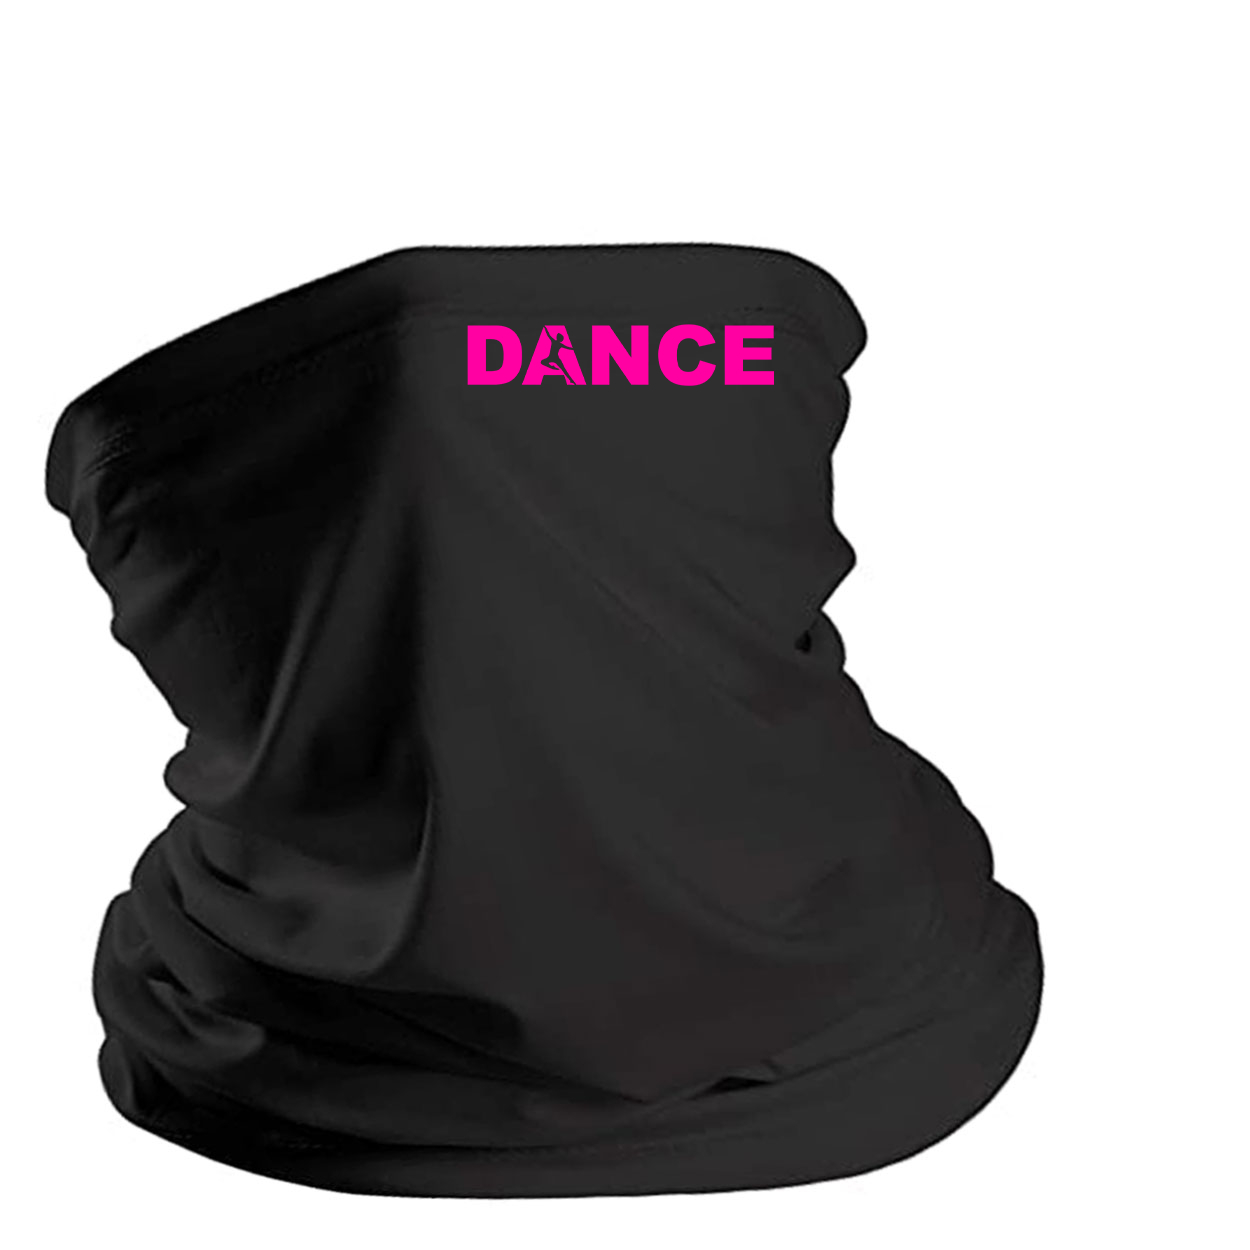 Dance Silhouette Logo Night Out Lightweight Neck Gaiter Face Mask Black (Pink Logo)